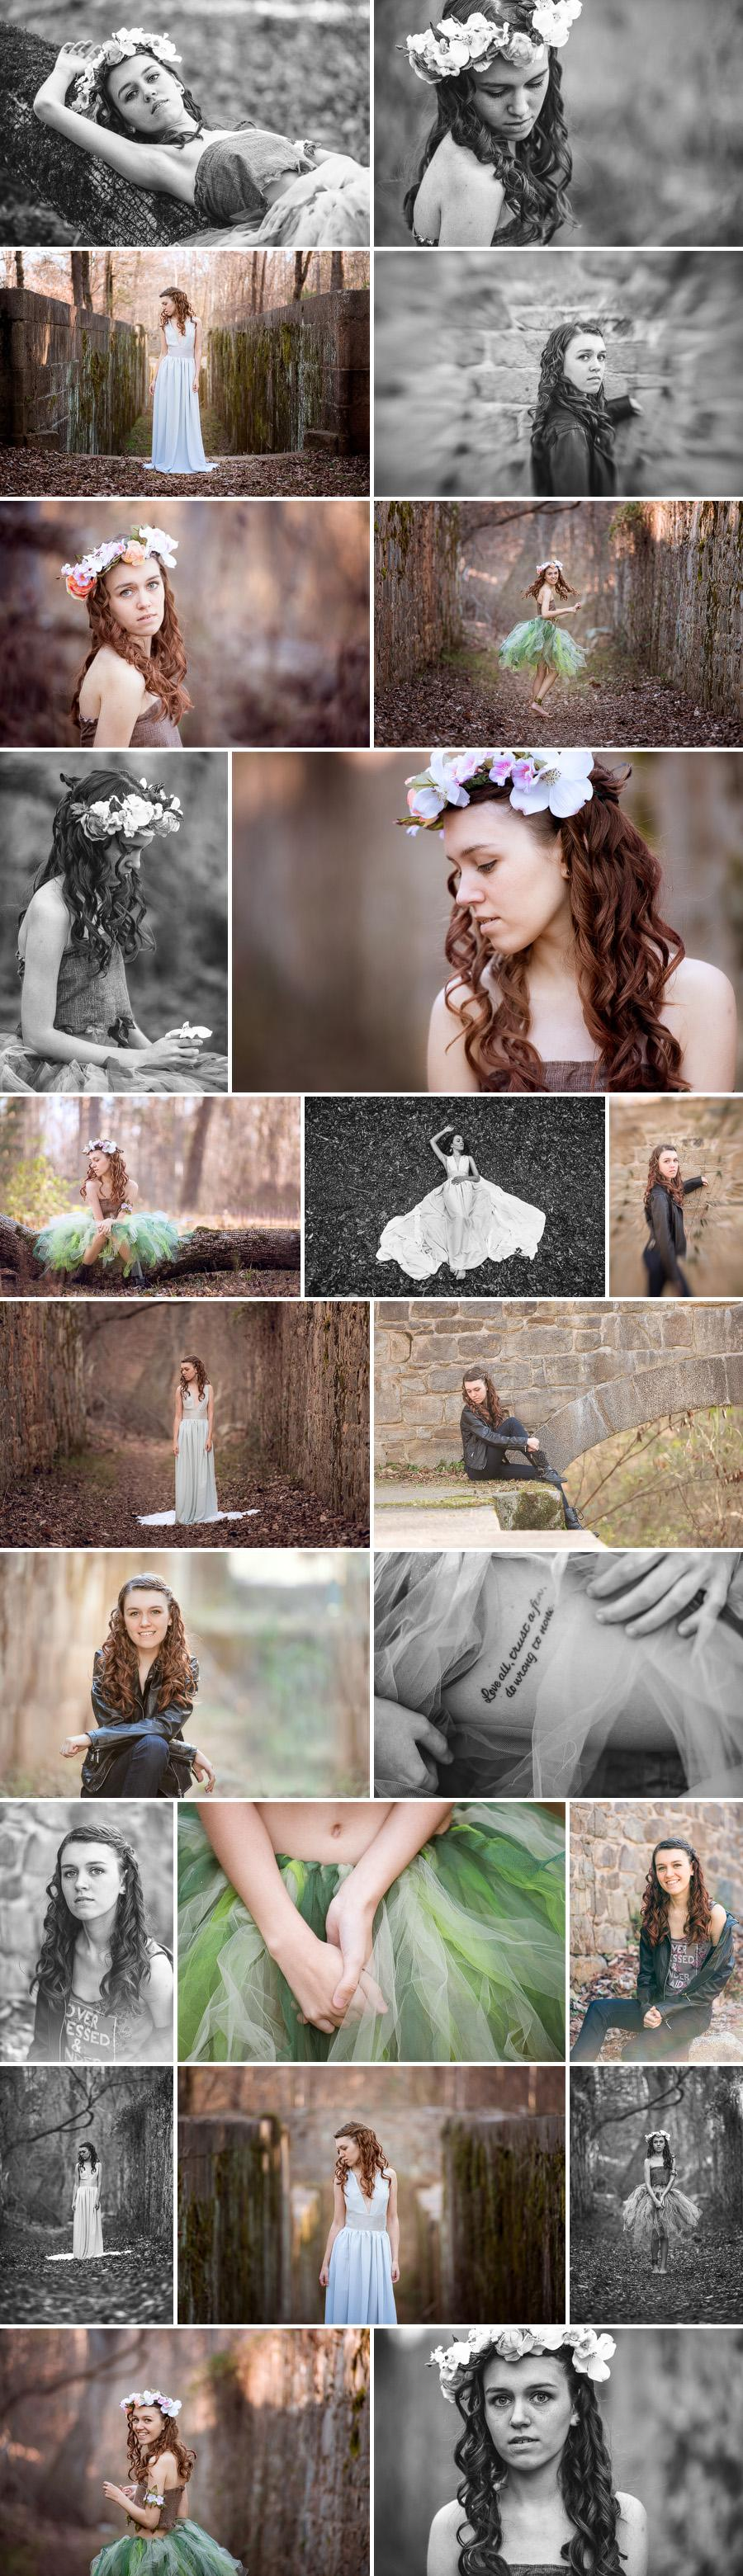 Landsford Canal state park senior photos